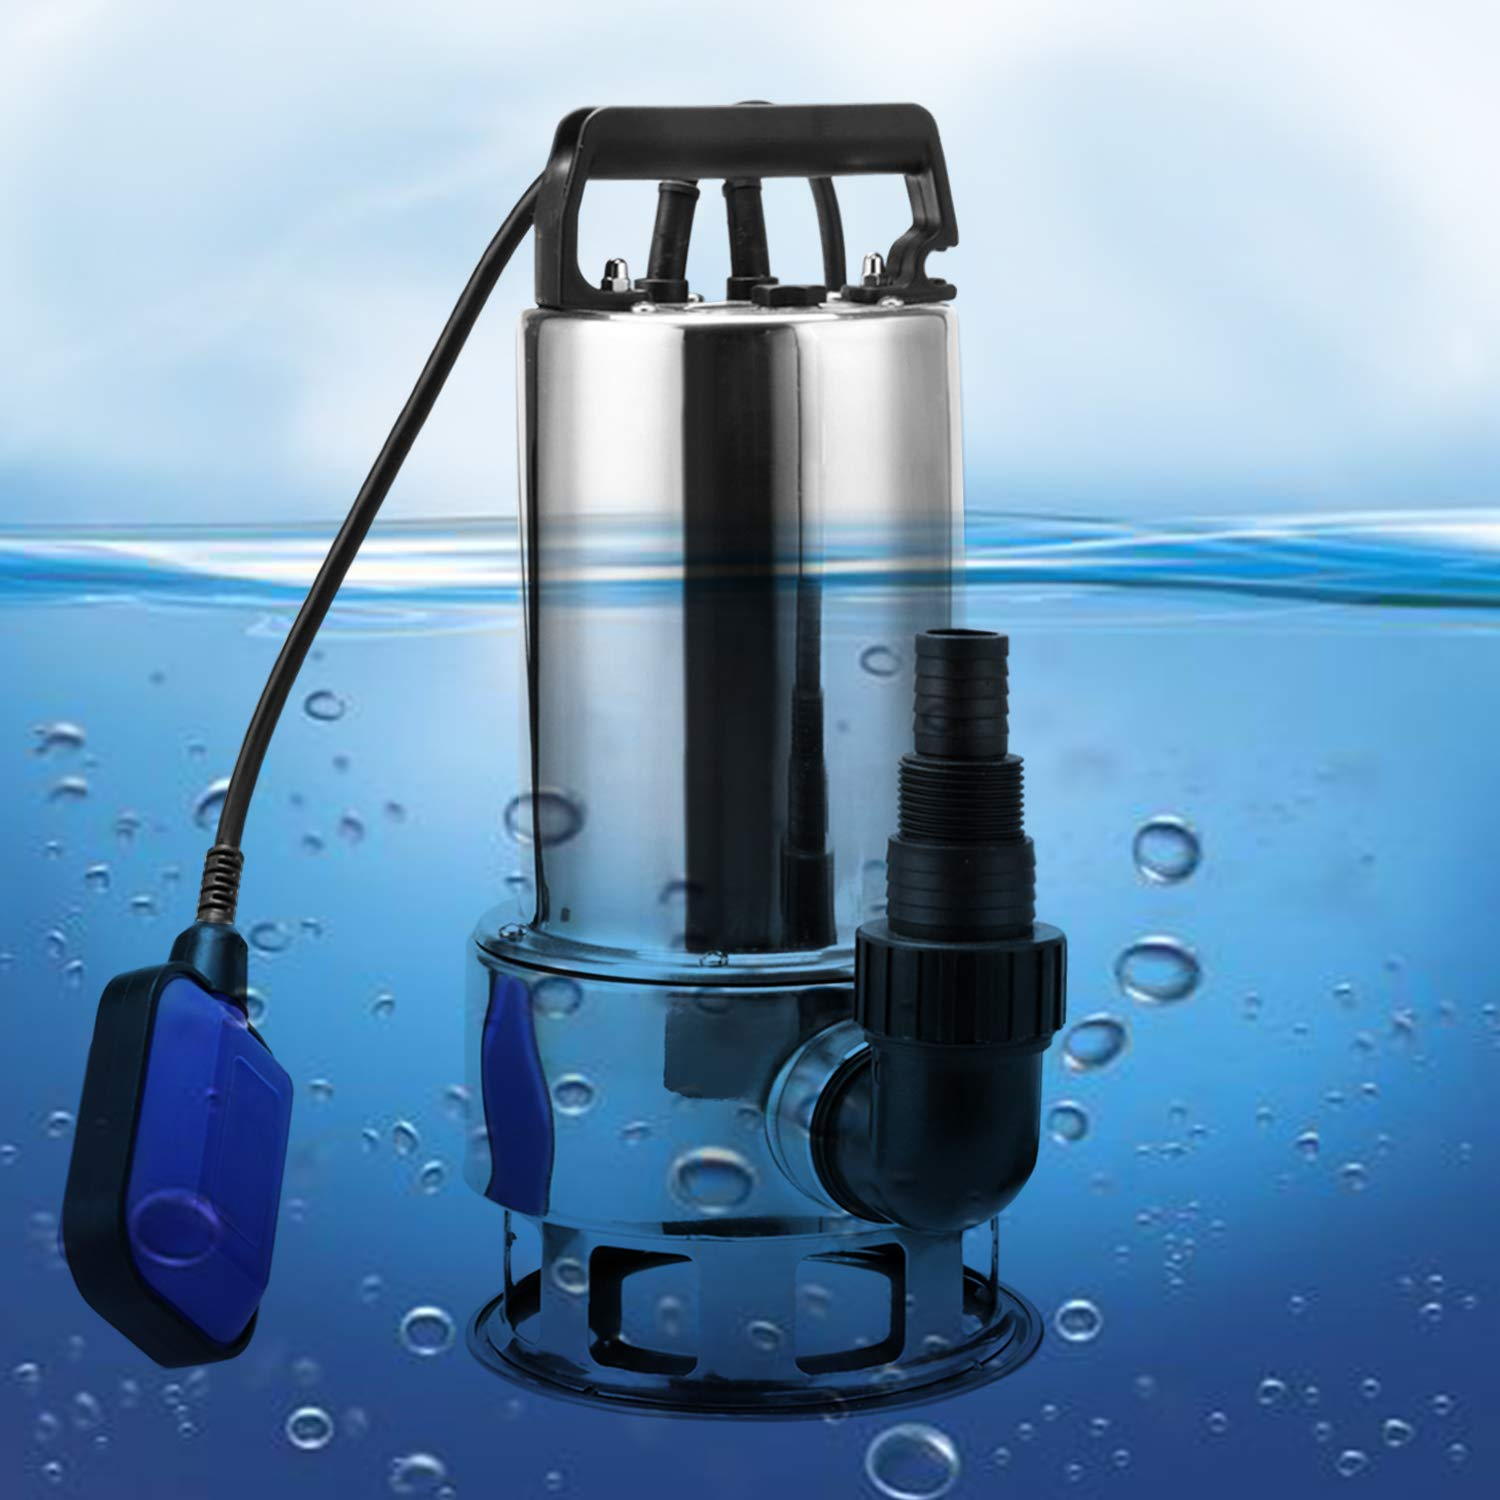 Homdox Submersible Water Pump 1.5 HP 1100W Garden Stainless Steel Sump Pump Pool Pump with Float Switch and 15ft Cable by Homdox (Image #1)